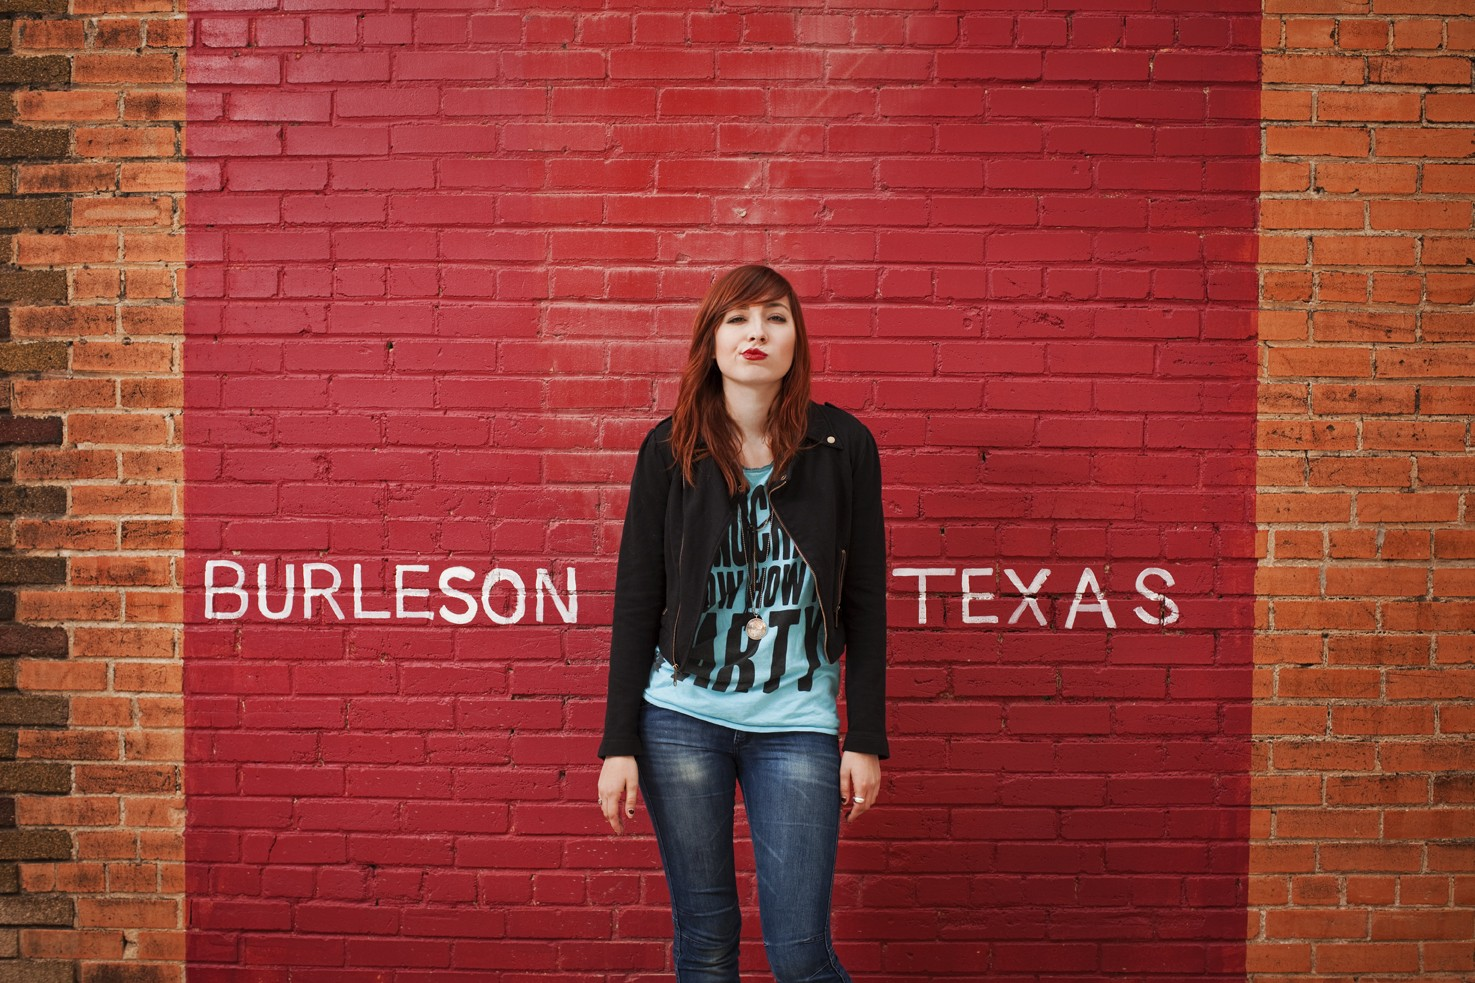 Wallpaper: un'immagine di Liz Lee tra la scritta Burleson Texas